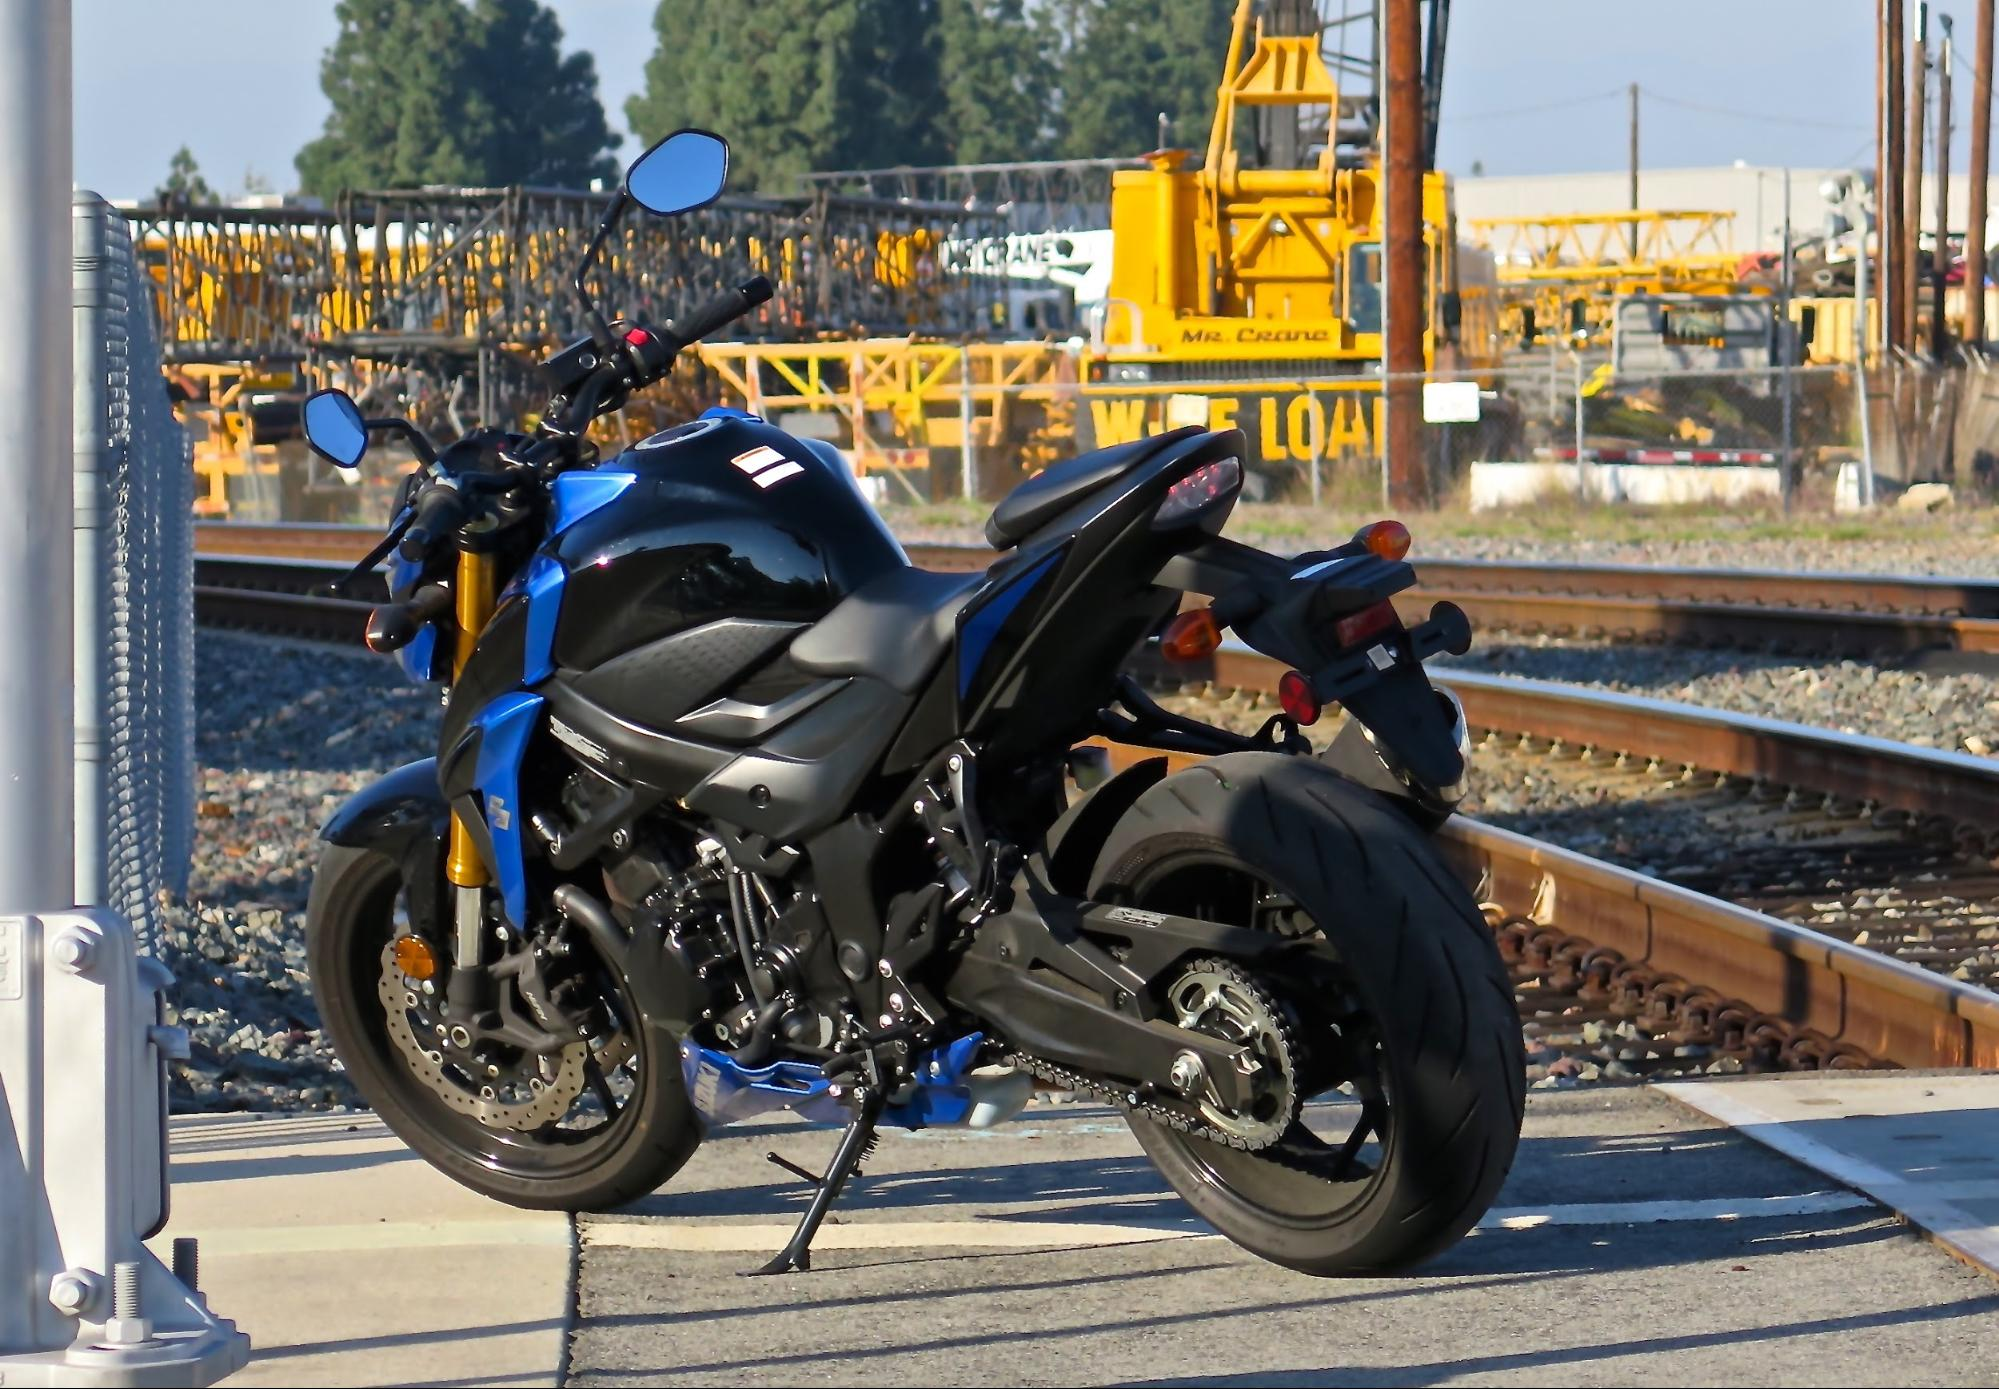 2018 Suzuki GSX-S750 Long-Term Review - Motorcycle com